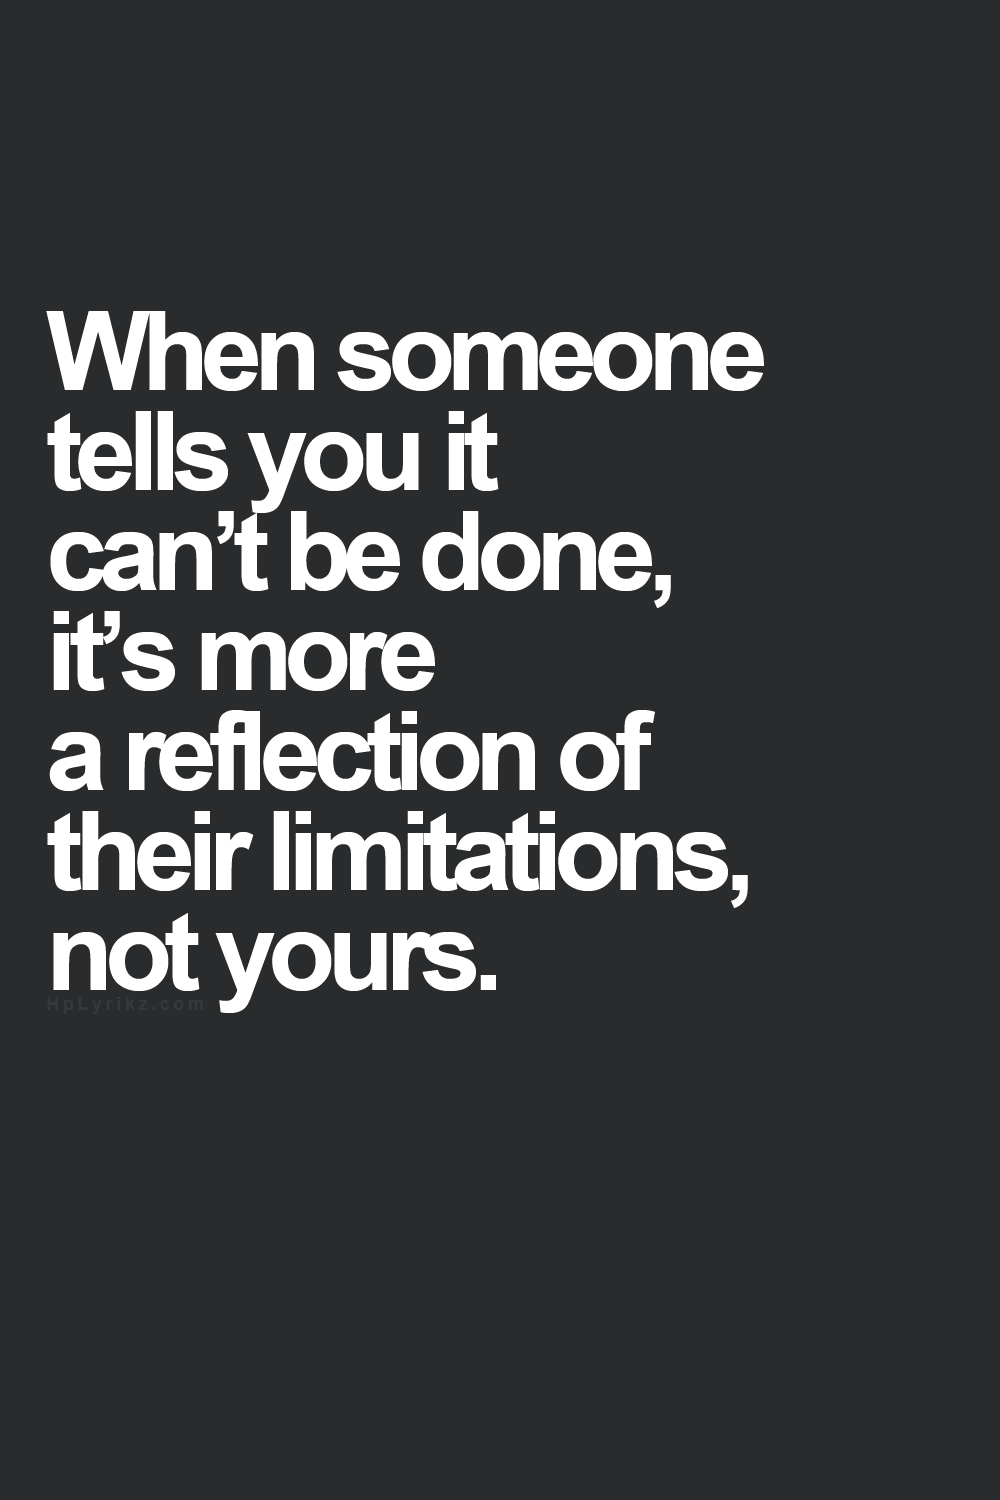 [IMAGE] Limitations